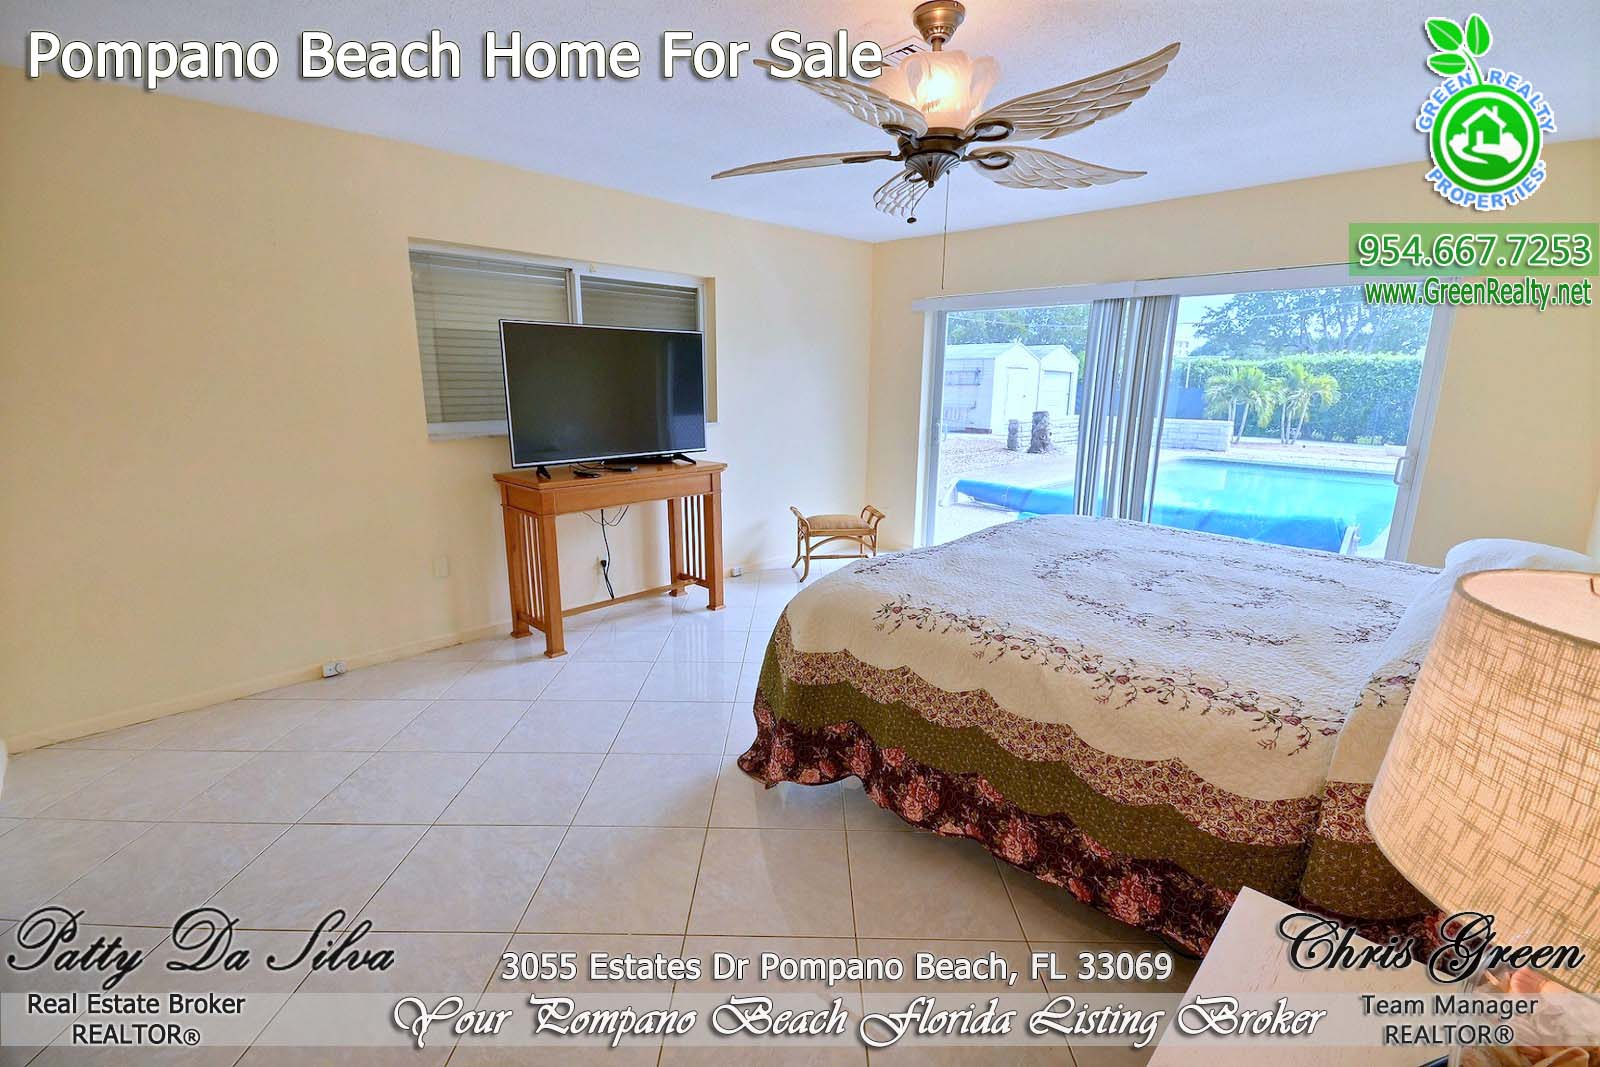 19 Patty Da Silva SELLS Pompano Beach Homes (3)